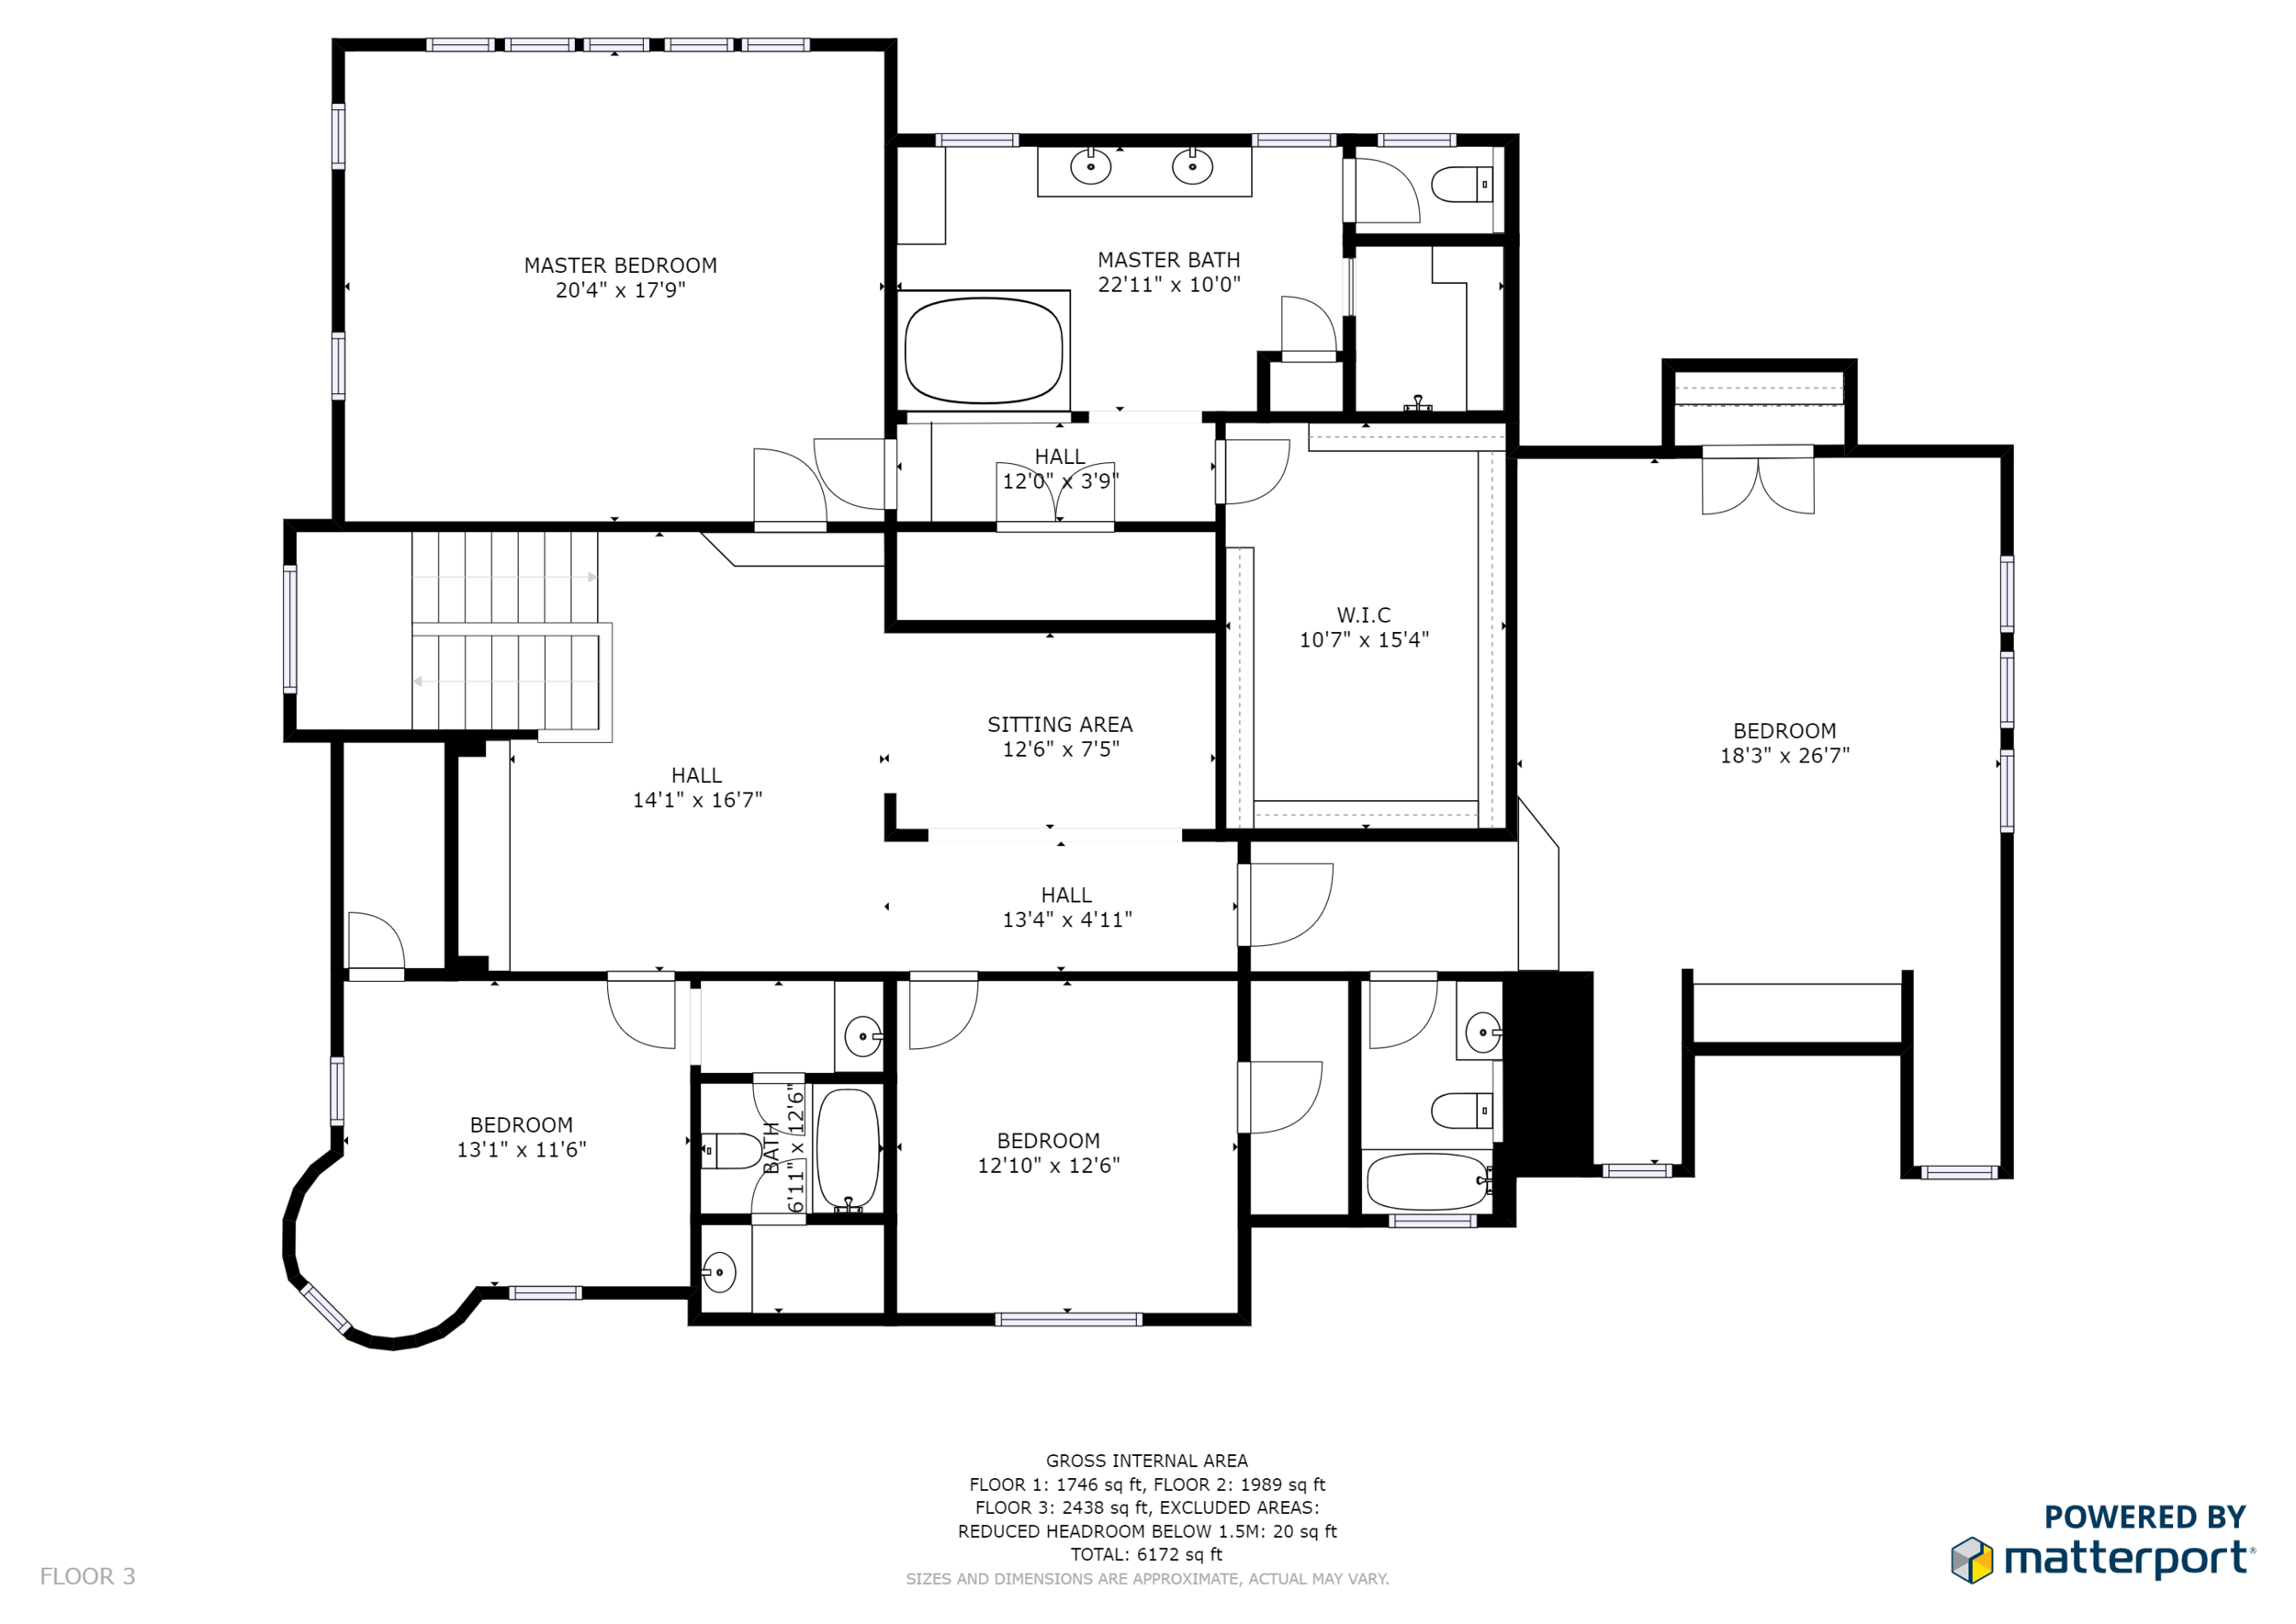 2D Floorplans - Under 5,000 sqft. | $1505,000 - 9,999 sqft. | $25010,000 - 14,999 sqft. | $350